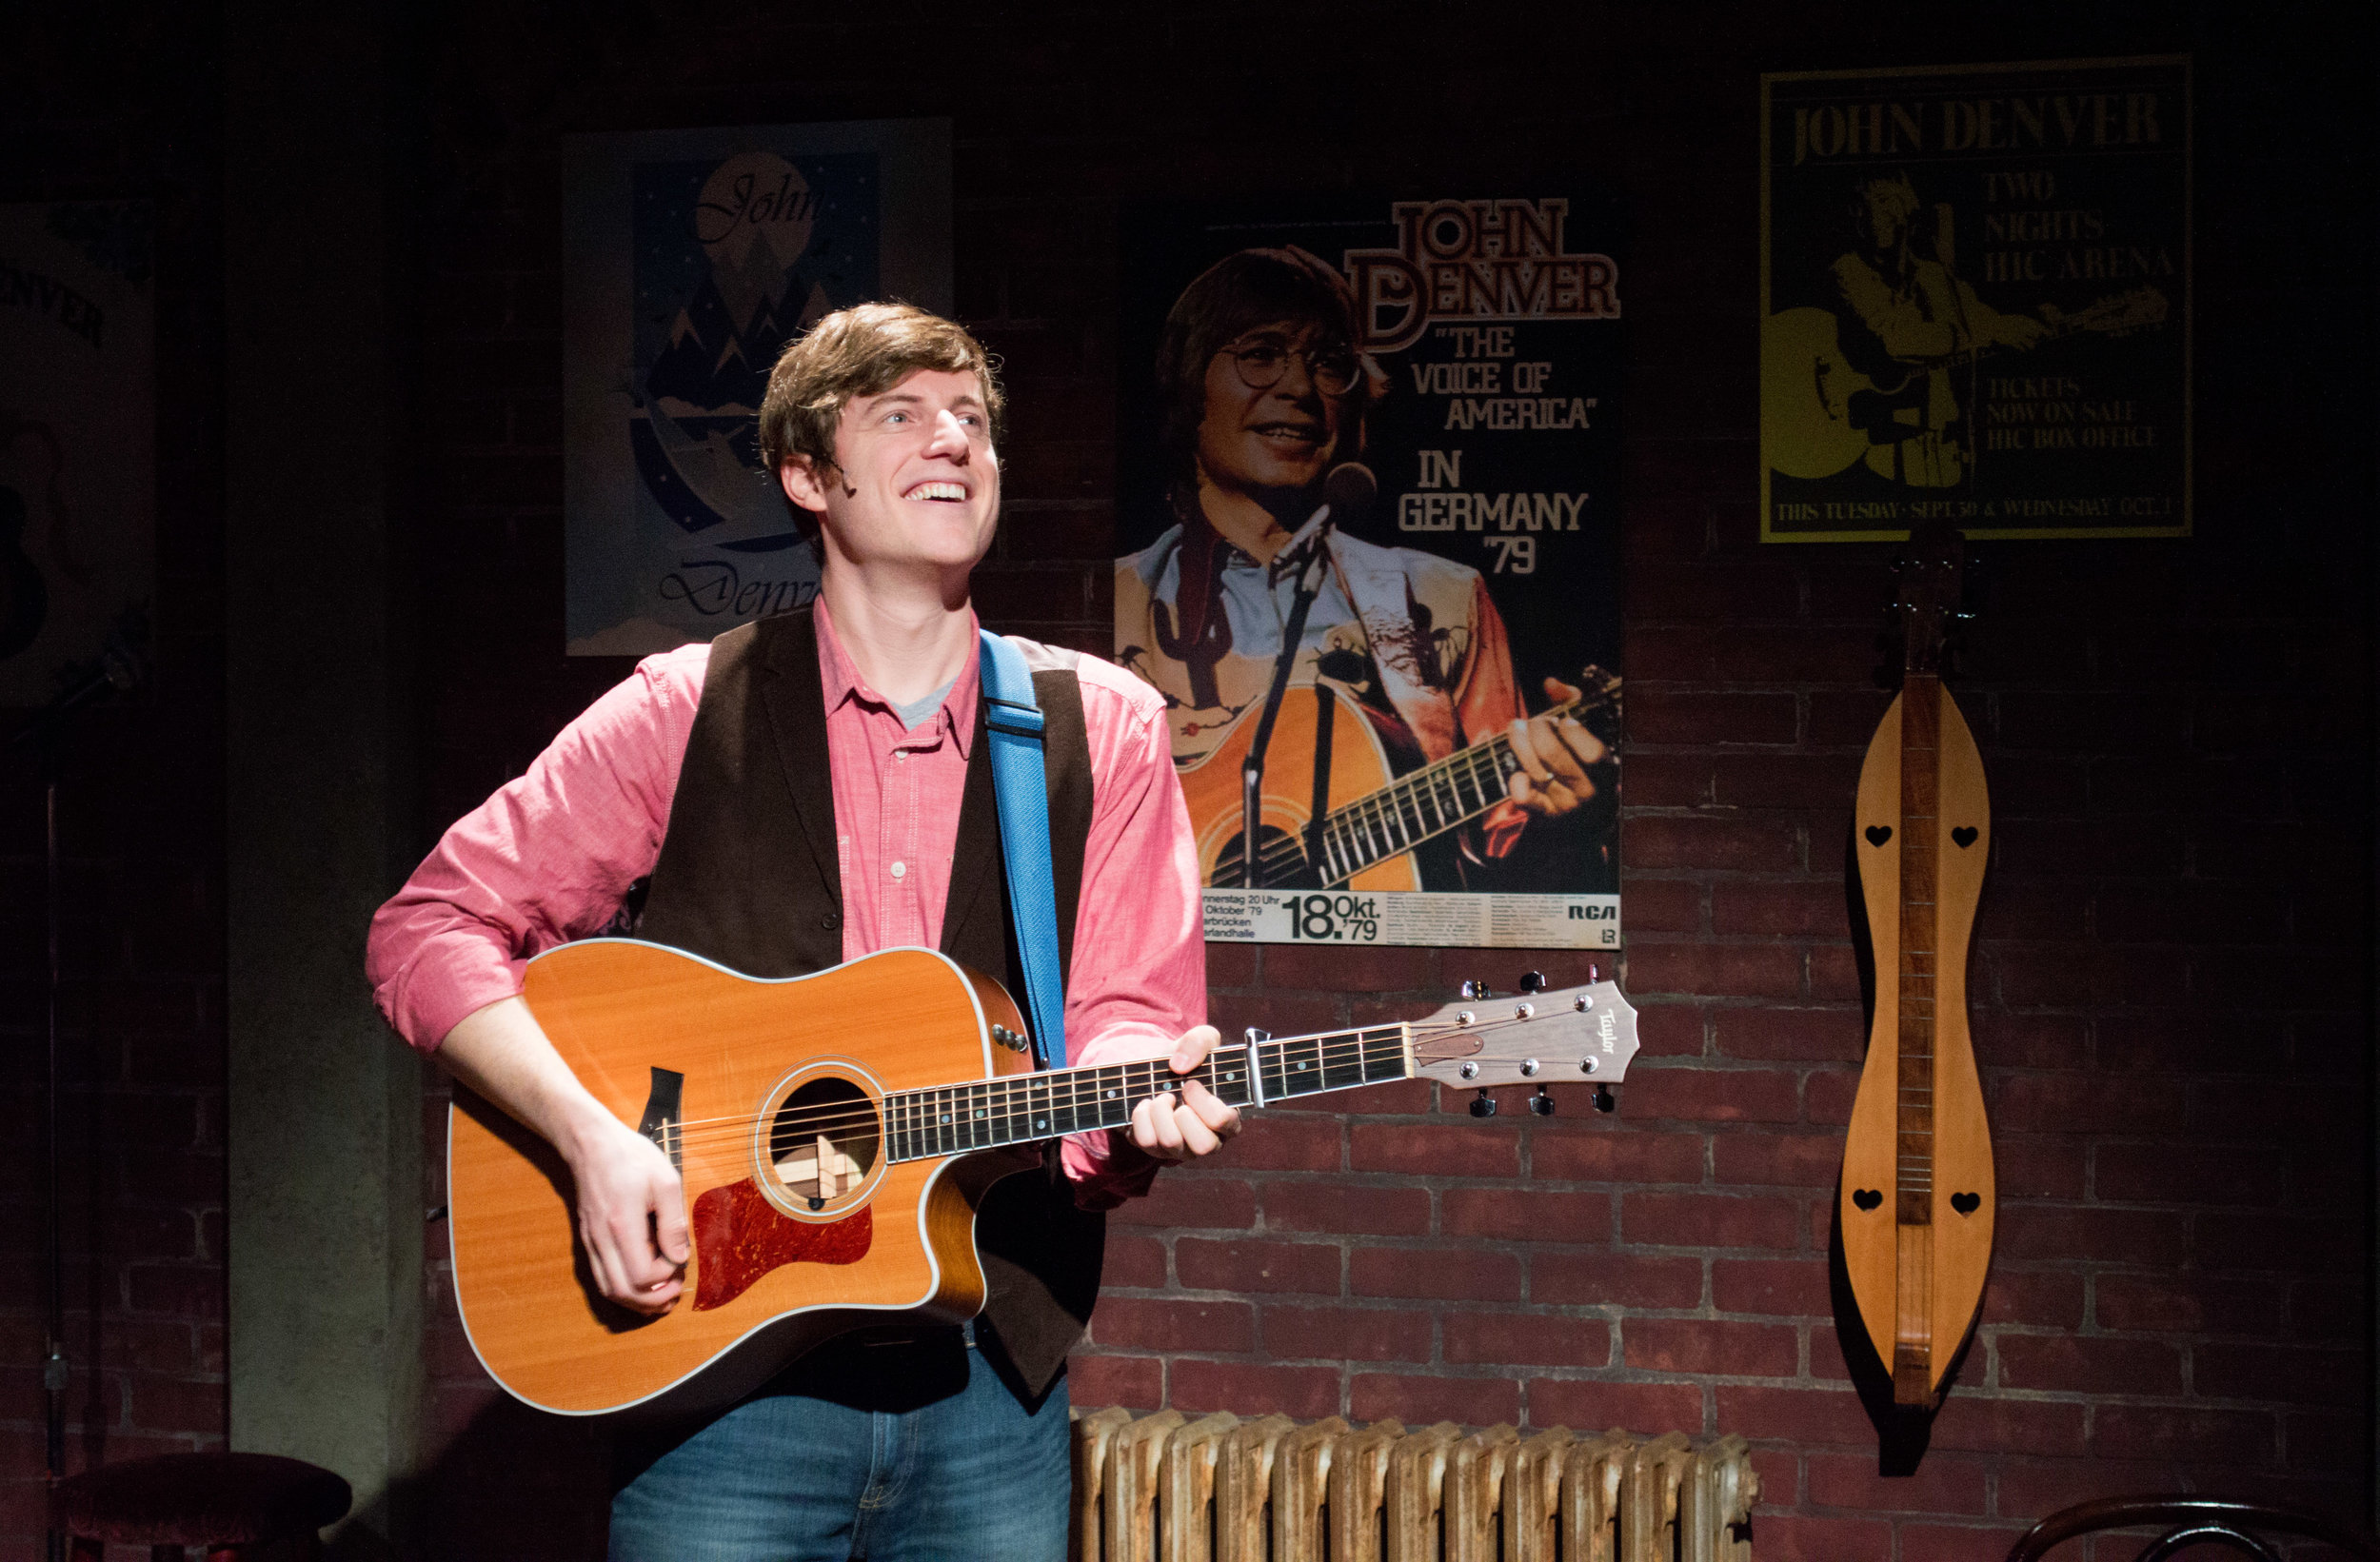 The Road: My Life With John Denver - December 2016 - January 2017Sam performed in this two person show featuring the music of John Denver at The People's Light and Theatre Companyphoto by Tori Harvey